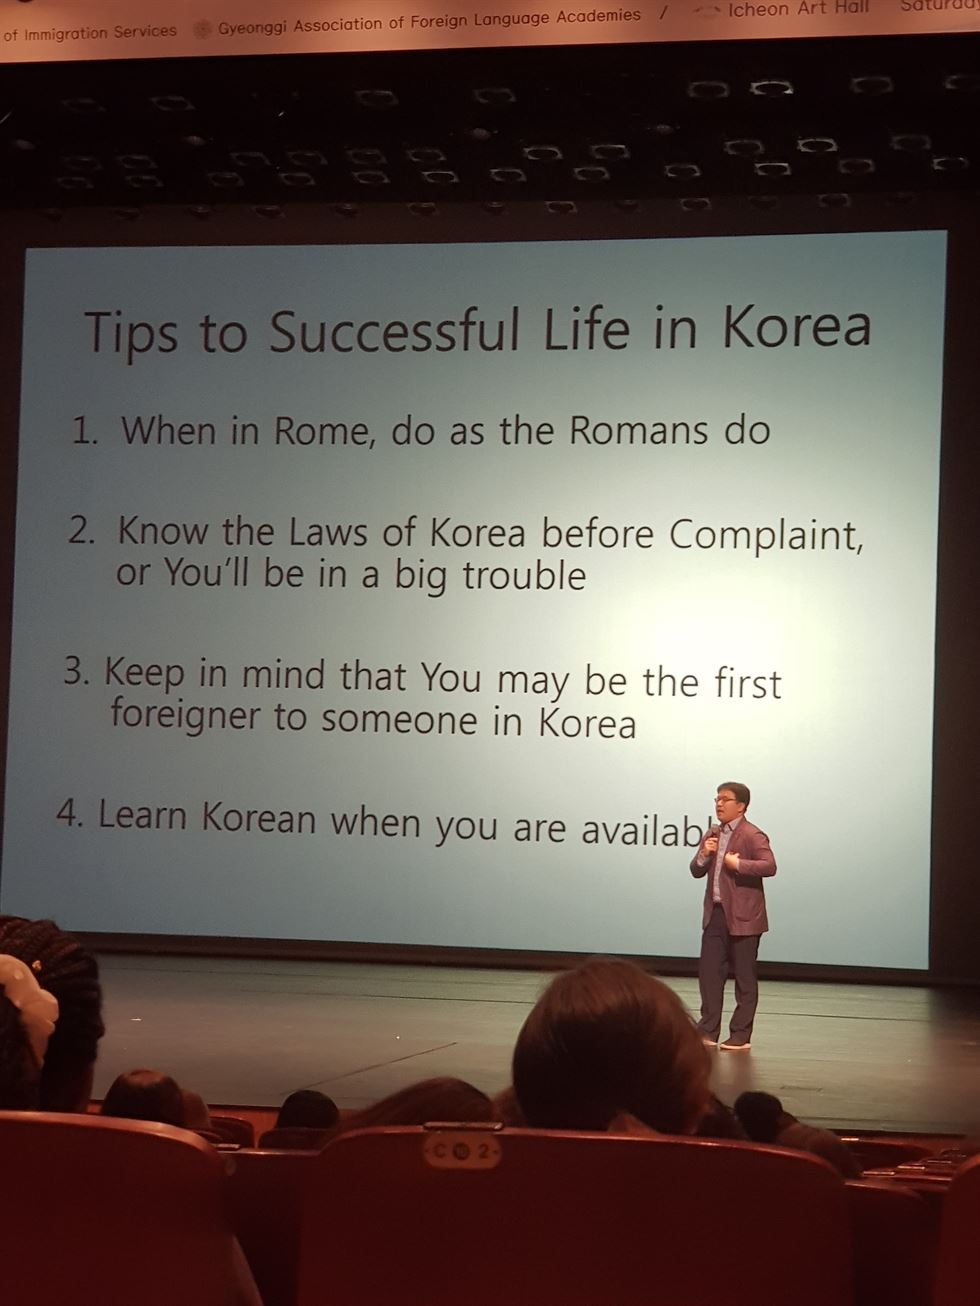 tips to succesful life in korea